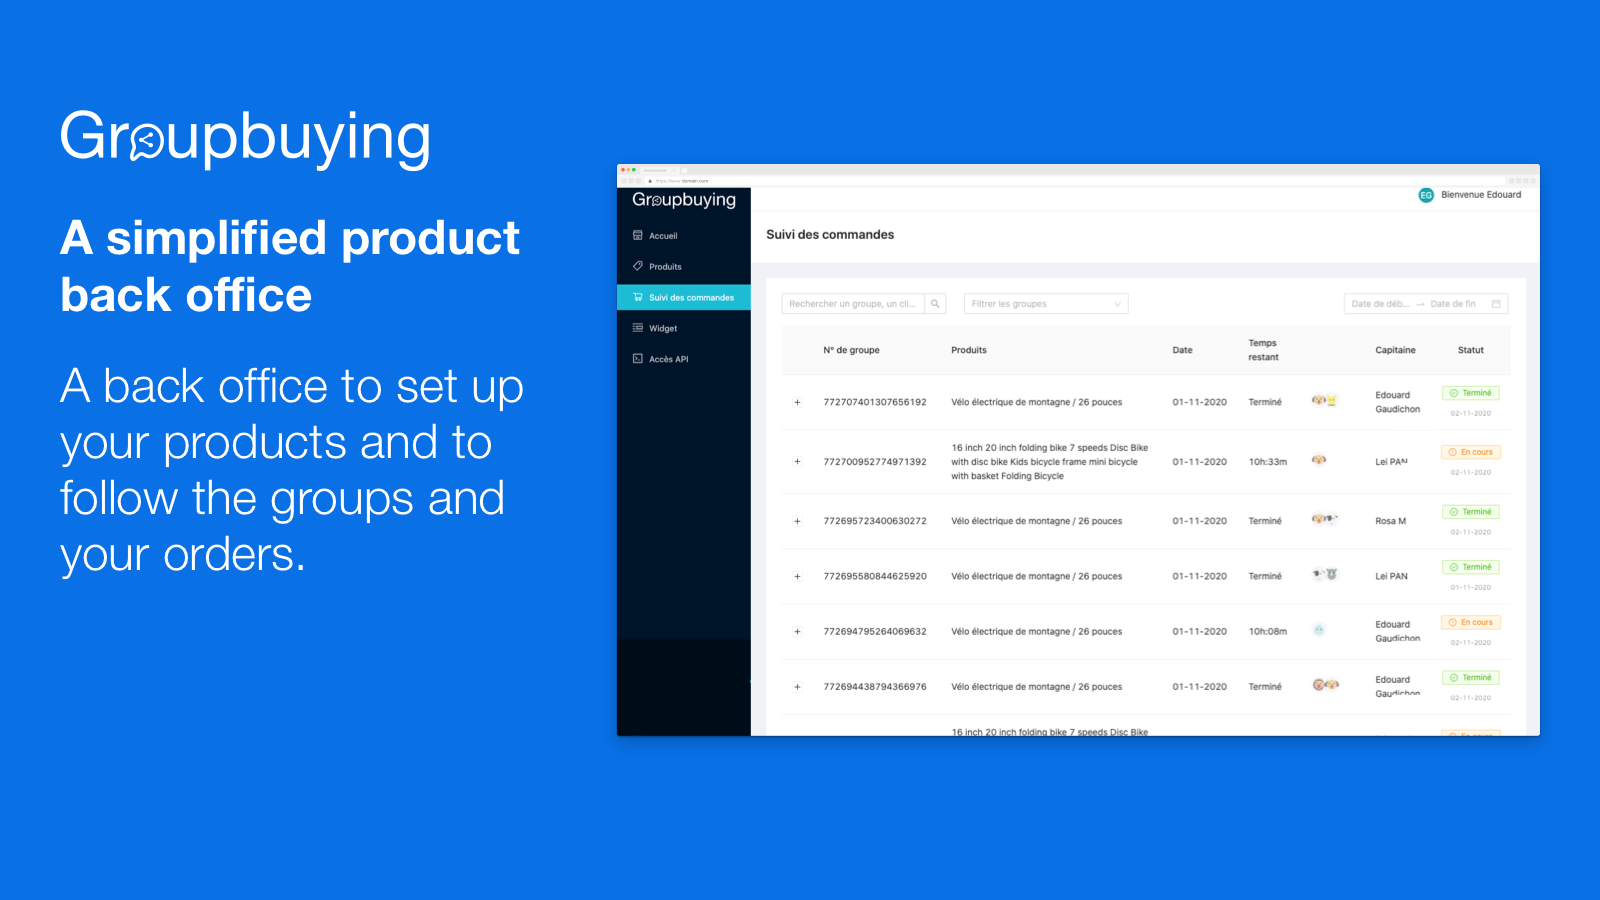 A simplified product back office